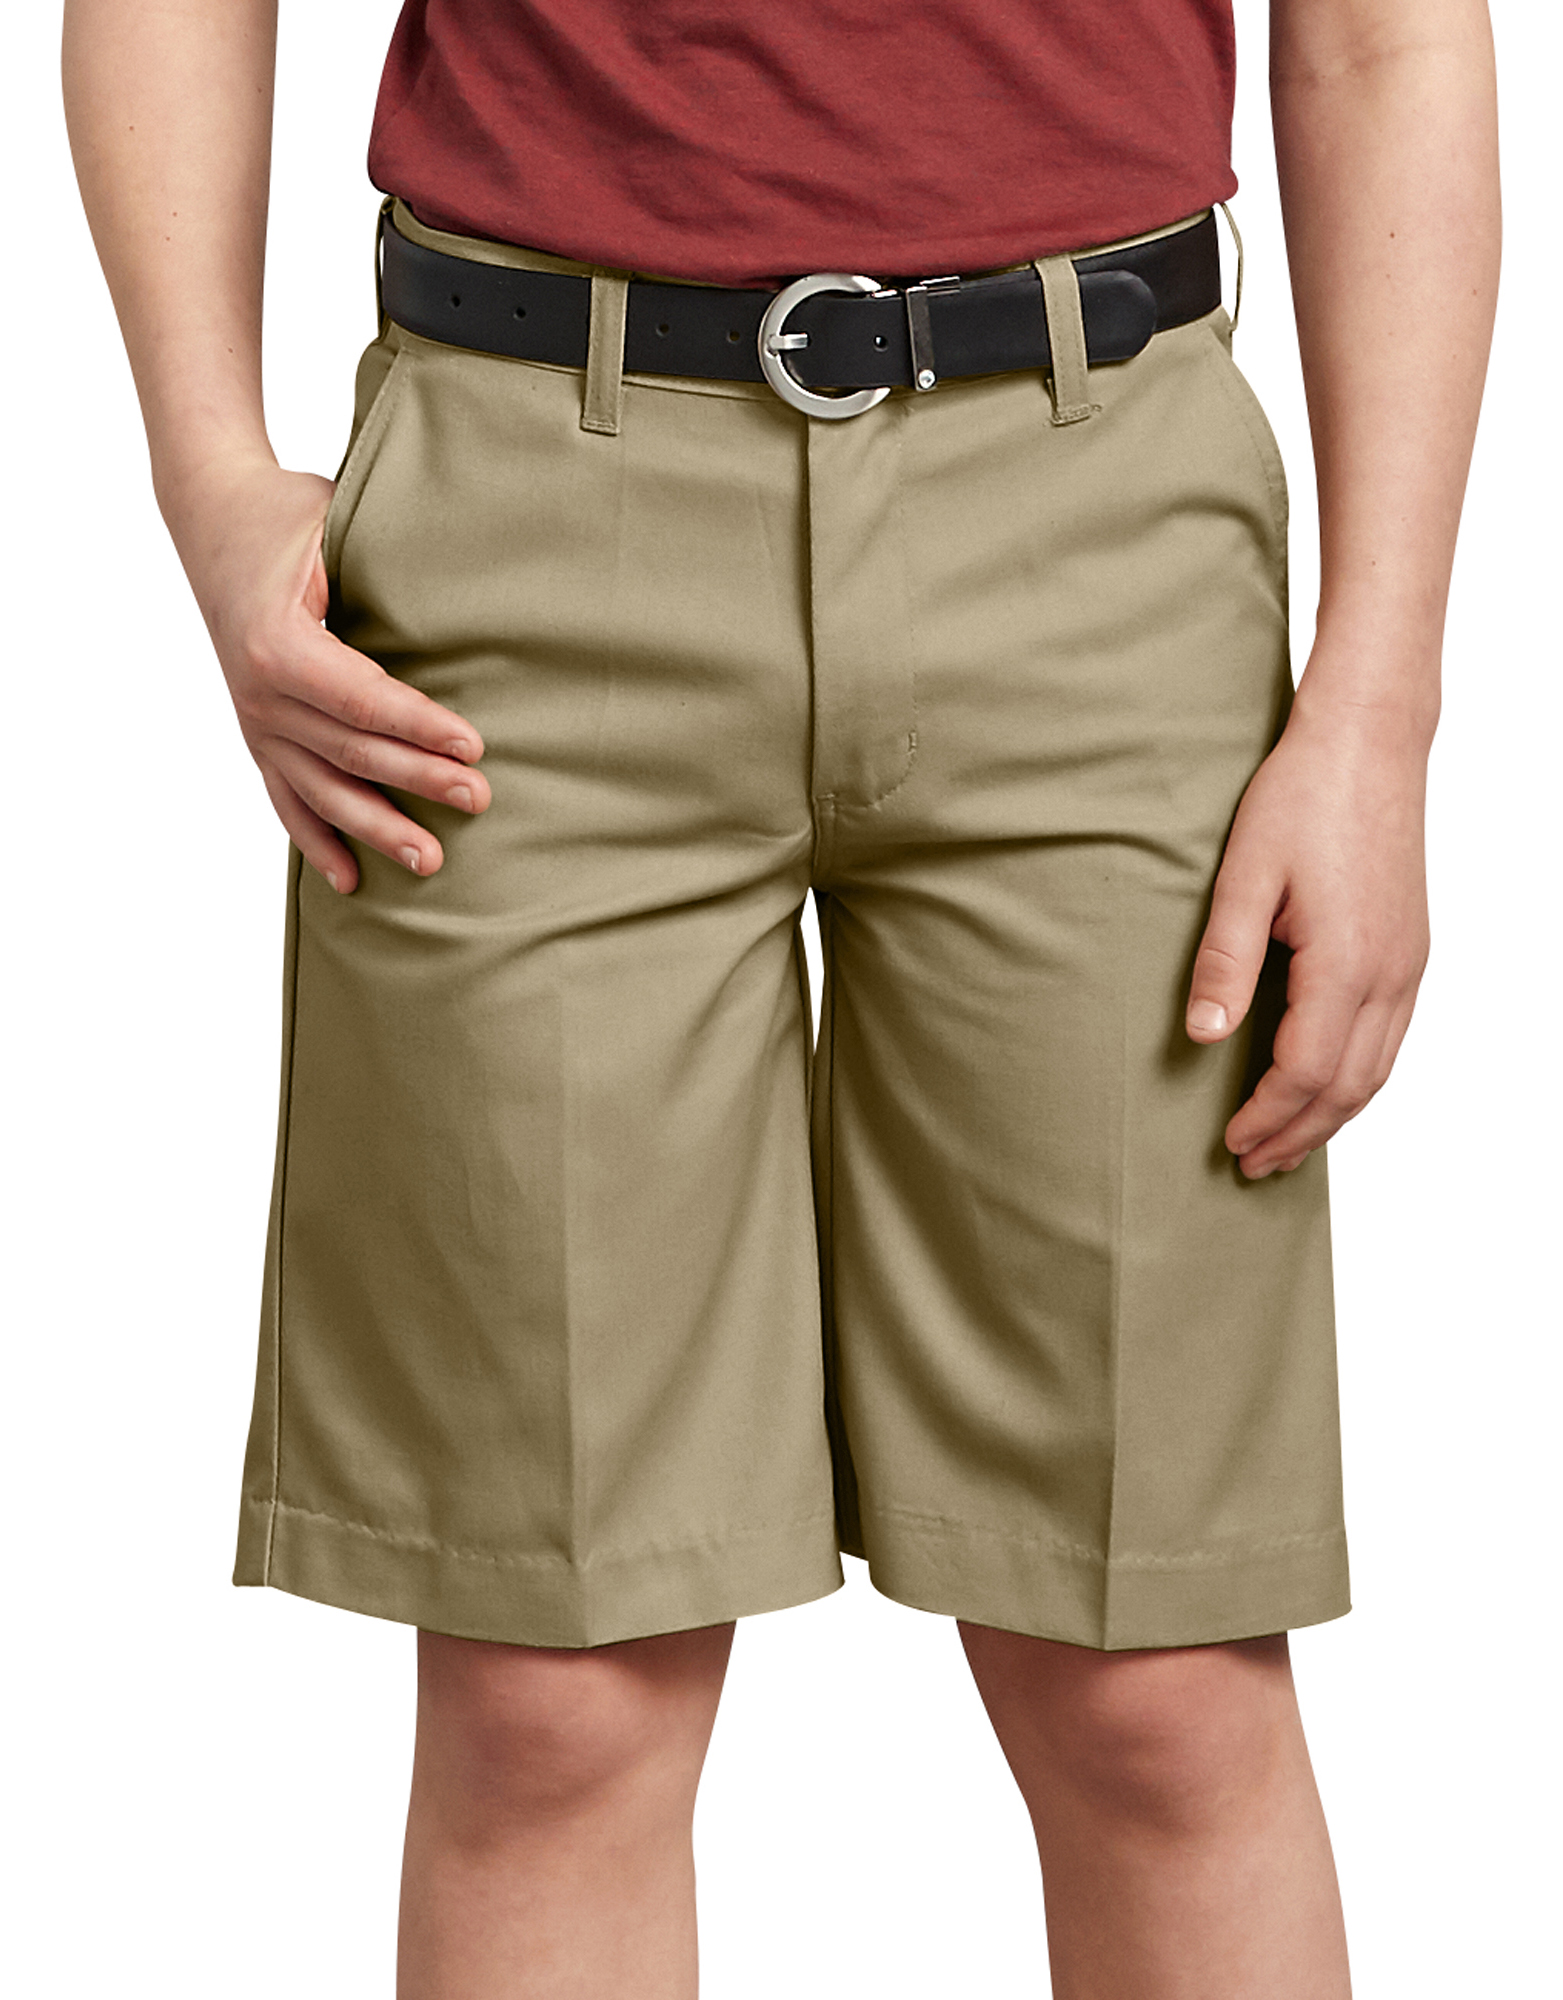 Boys' FlexWaist® Flat Front Shorts, 4-7 - Military Khaki (KH)